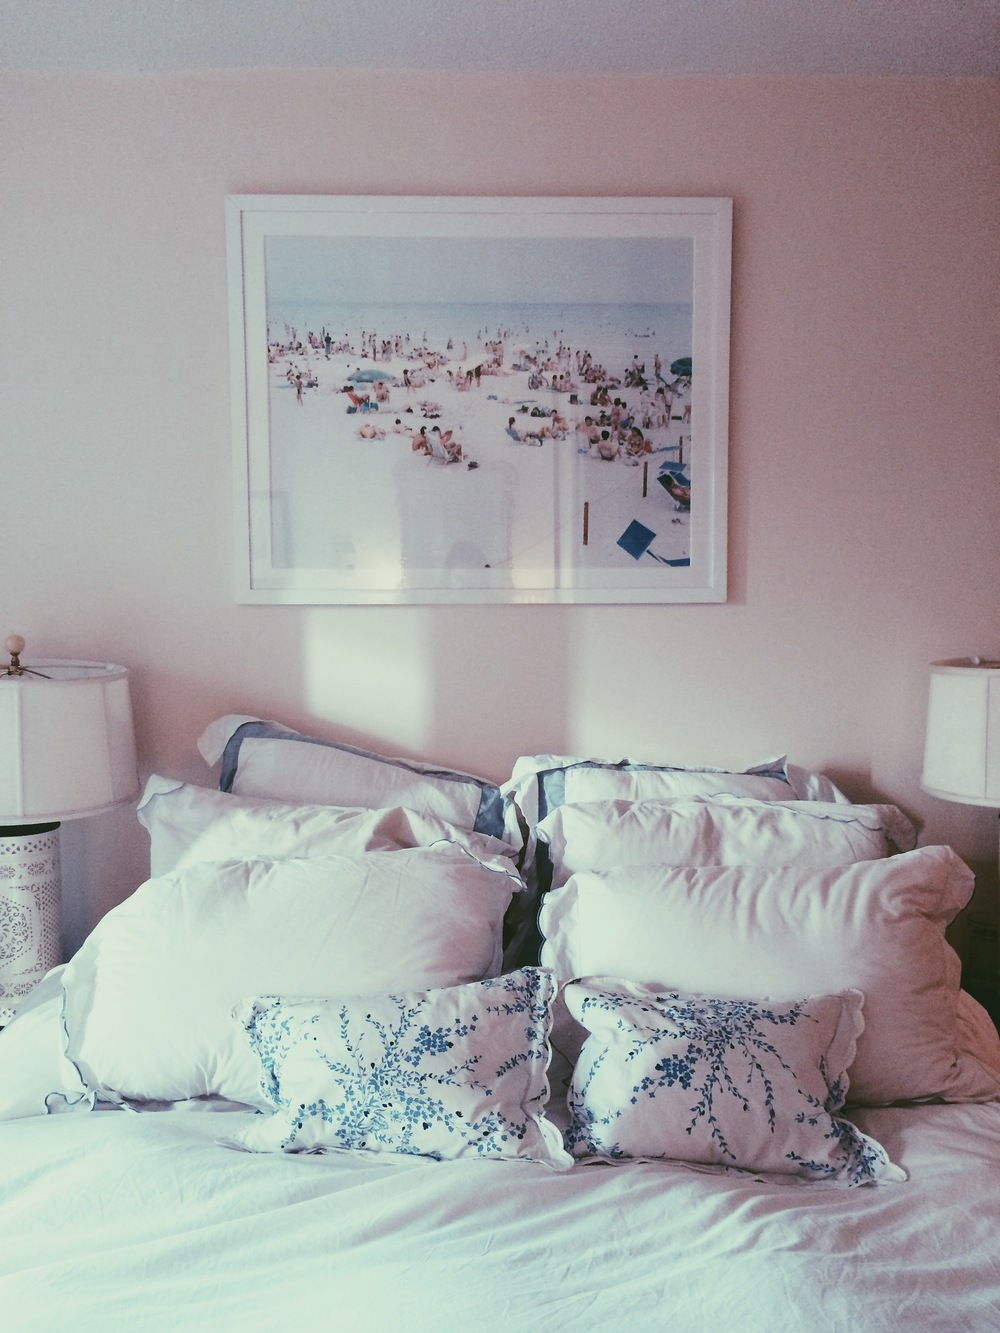 New York City. October 2014.   My bed. New York City // Linens by D. Porthault, Schweitzer, and Frette.